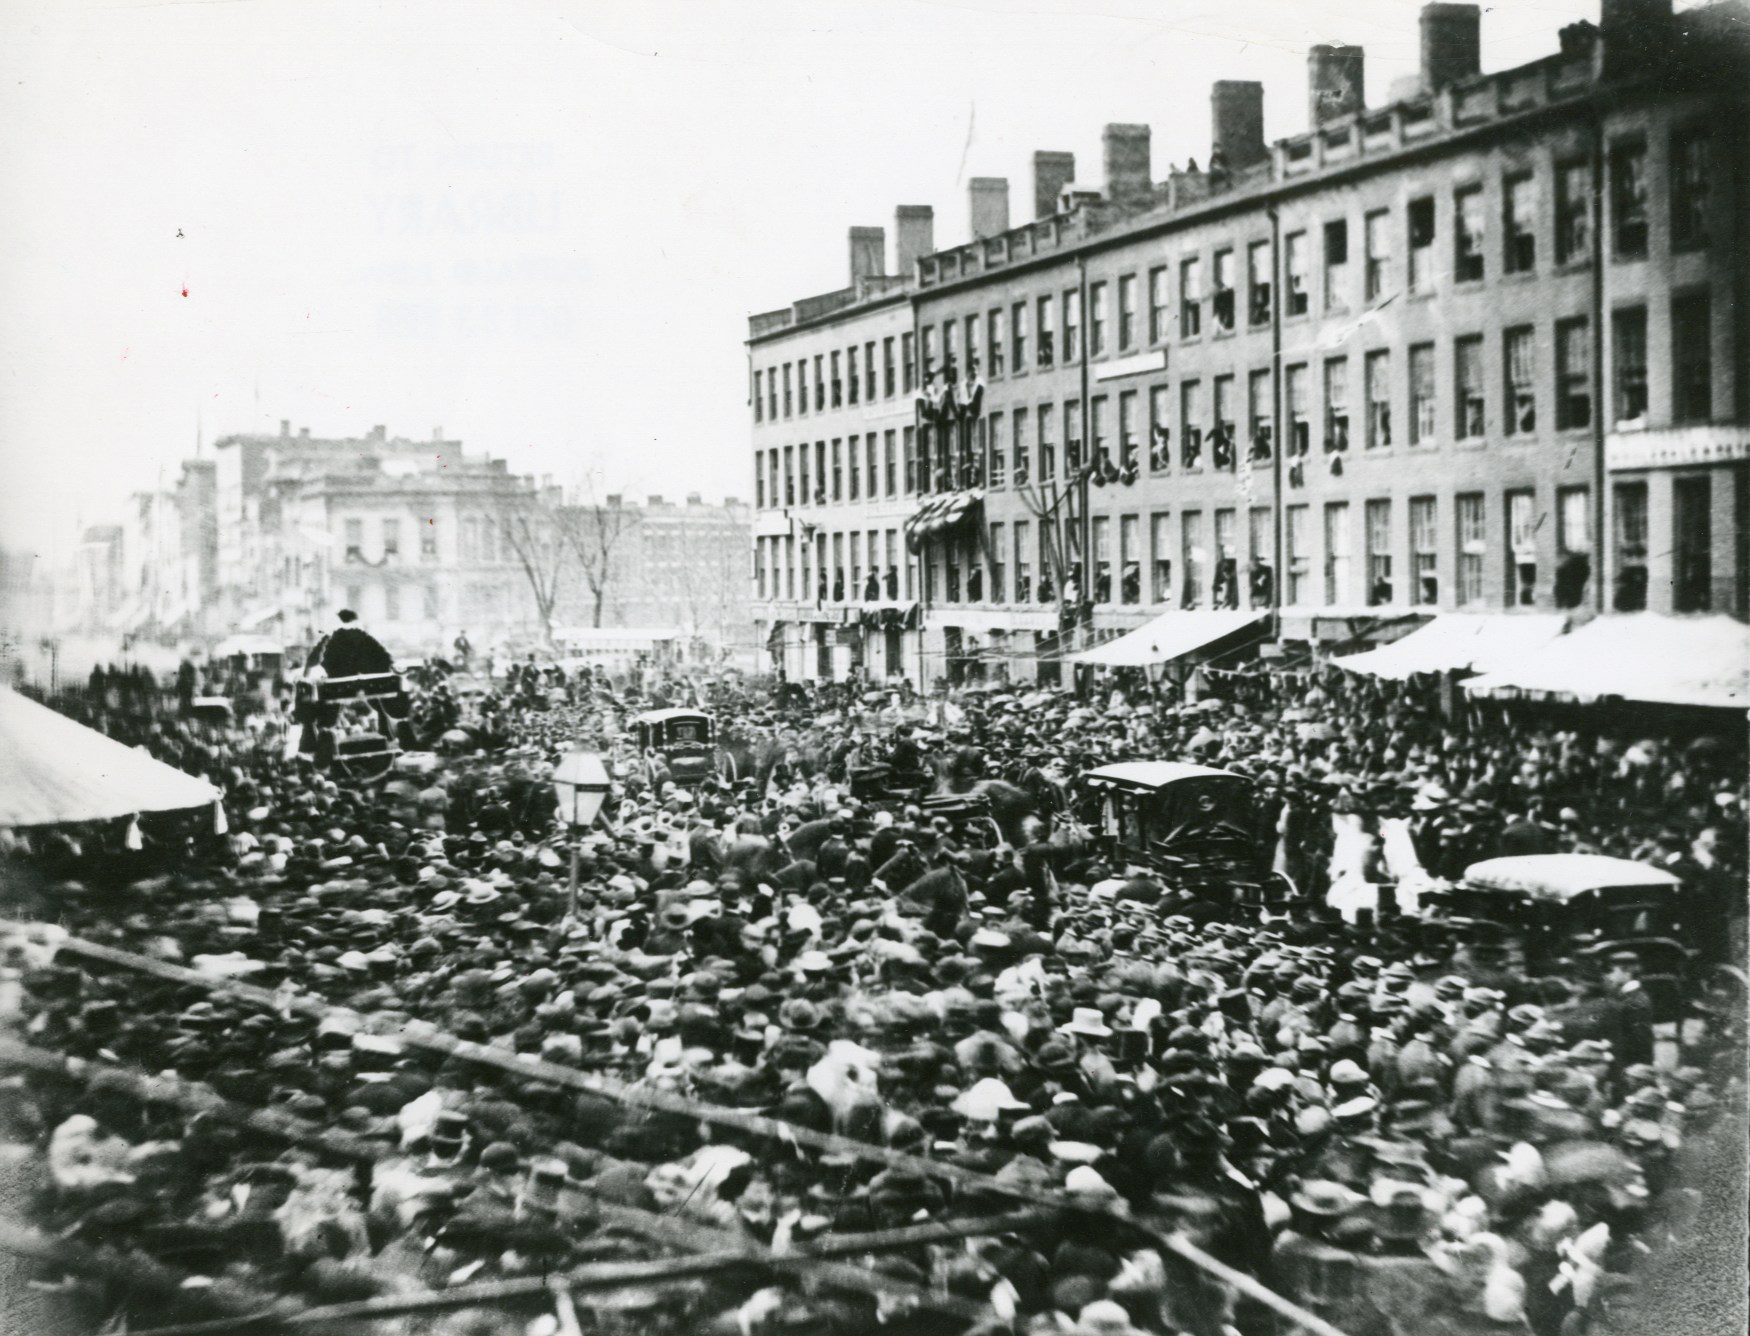 A view on Main Street, Buffalo, from April 27, 1865, shows the throng gathered around the funeral procession as Abraham Lincoln's body was taken to Springfield, Ill., for burial.